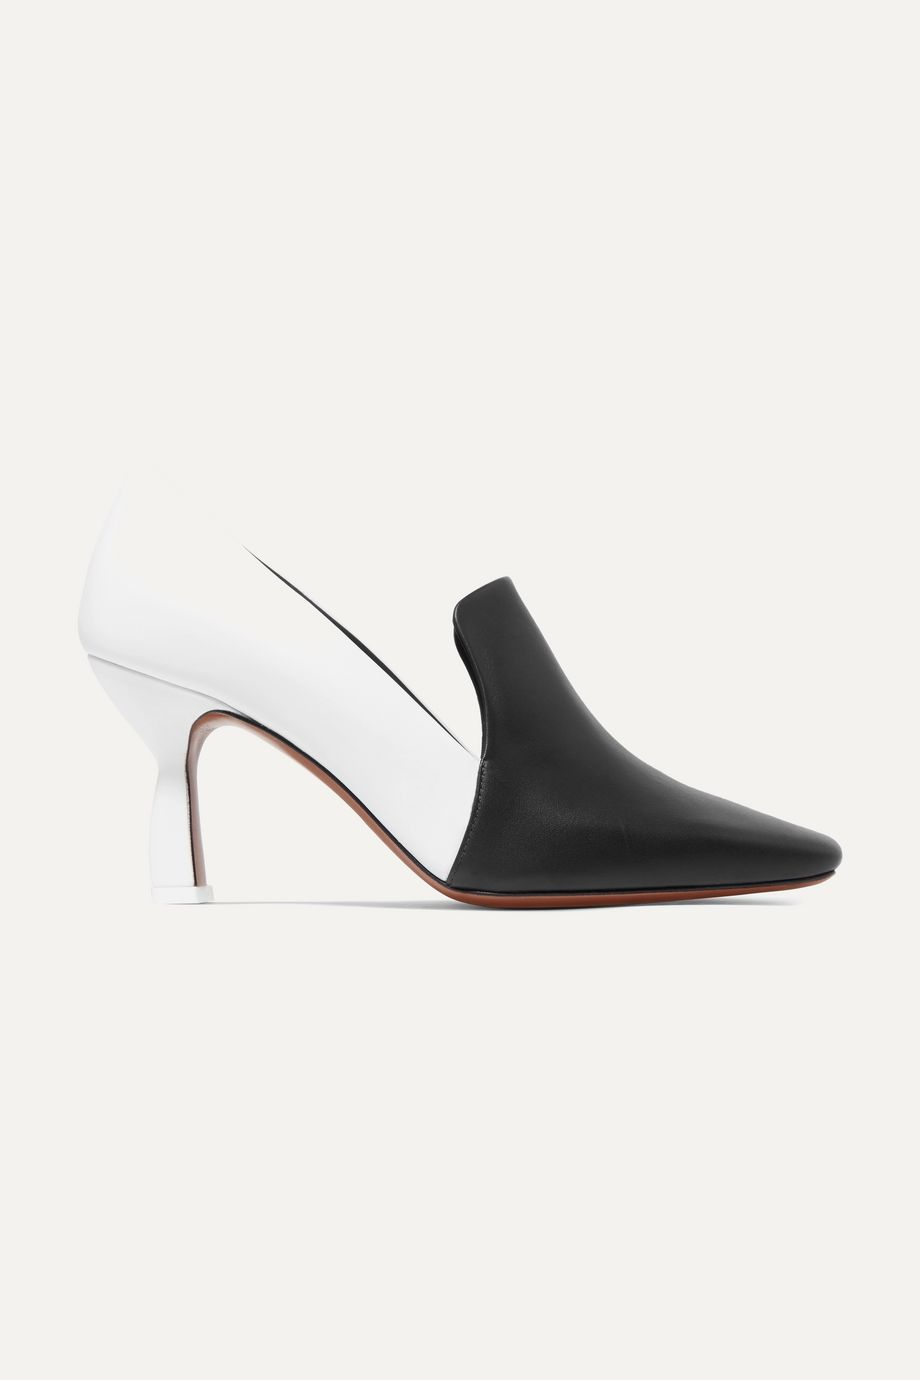 Neous Aerid two-tone leather pumps